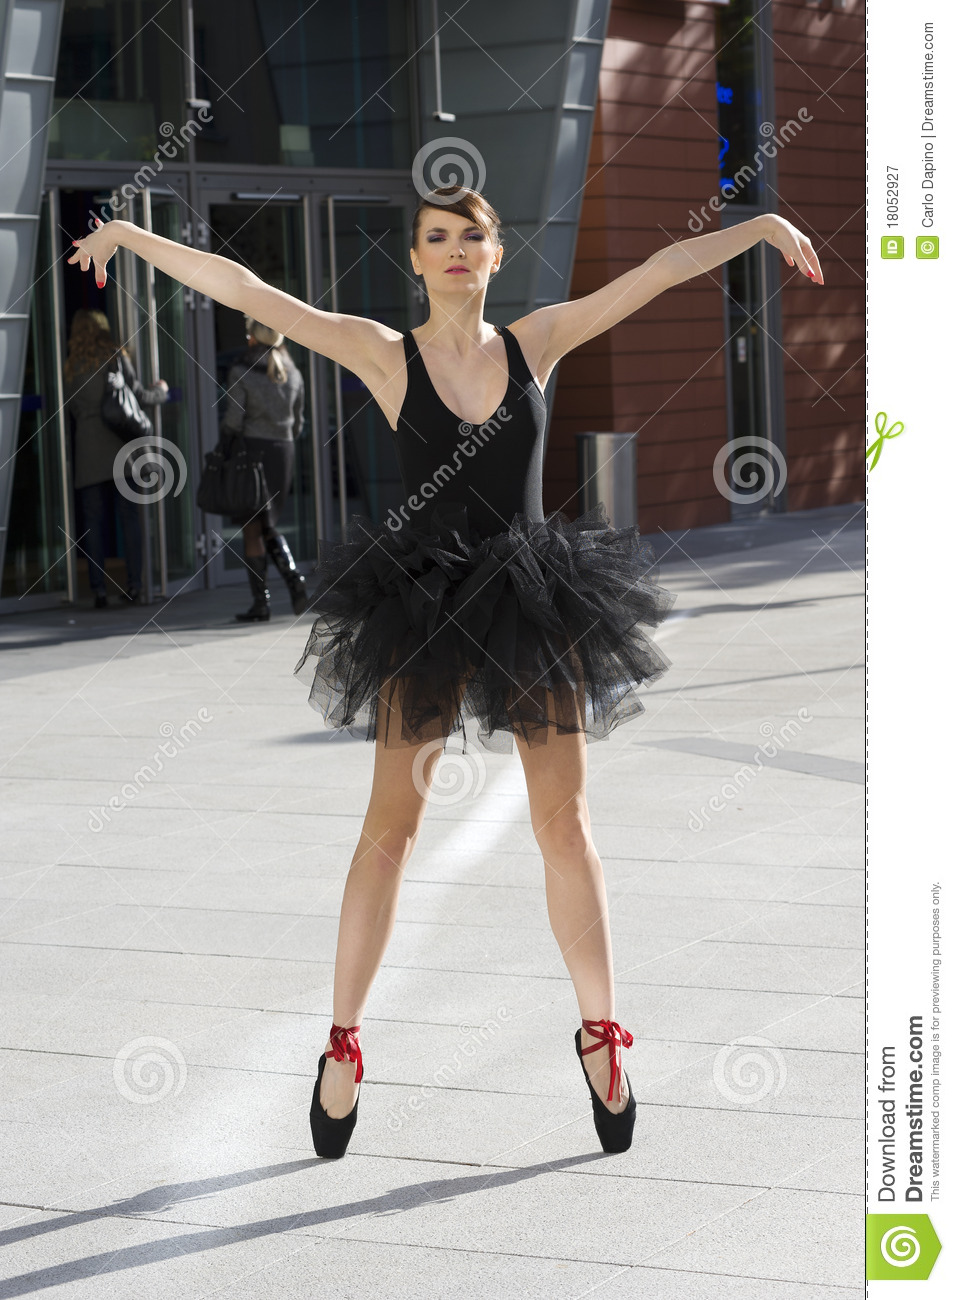 Ballerina Outdoor On Pointe Pose Stock Image - Image: 18052927